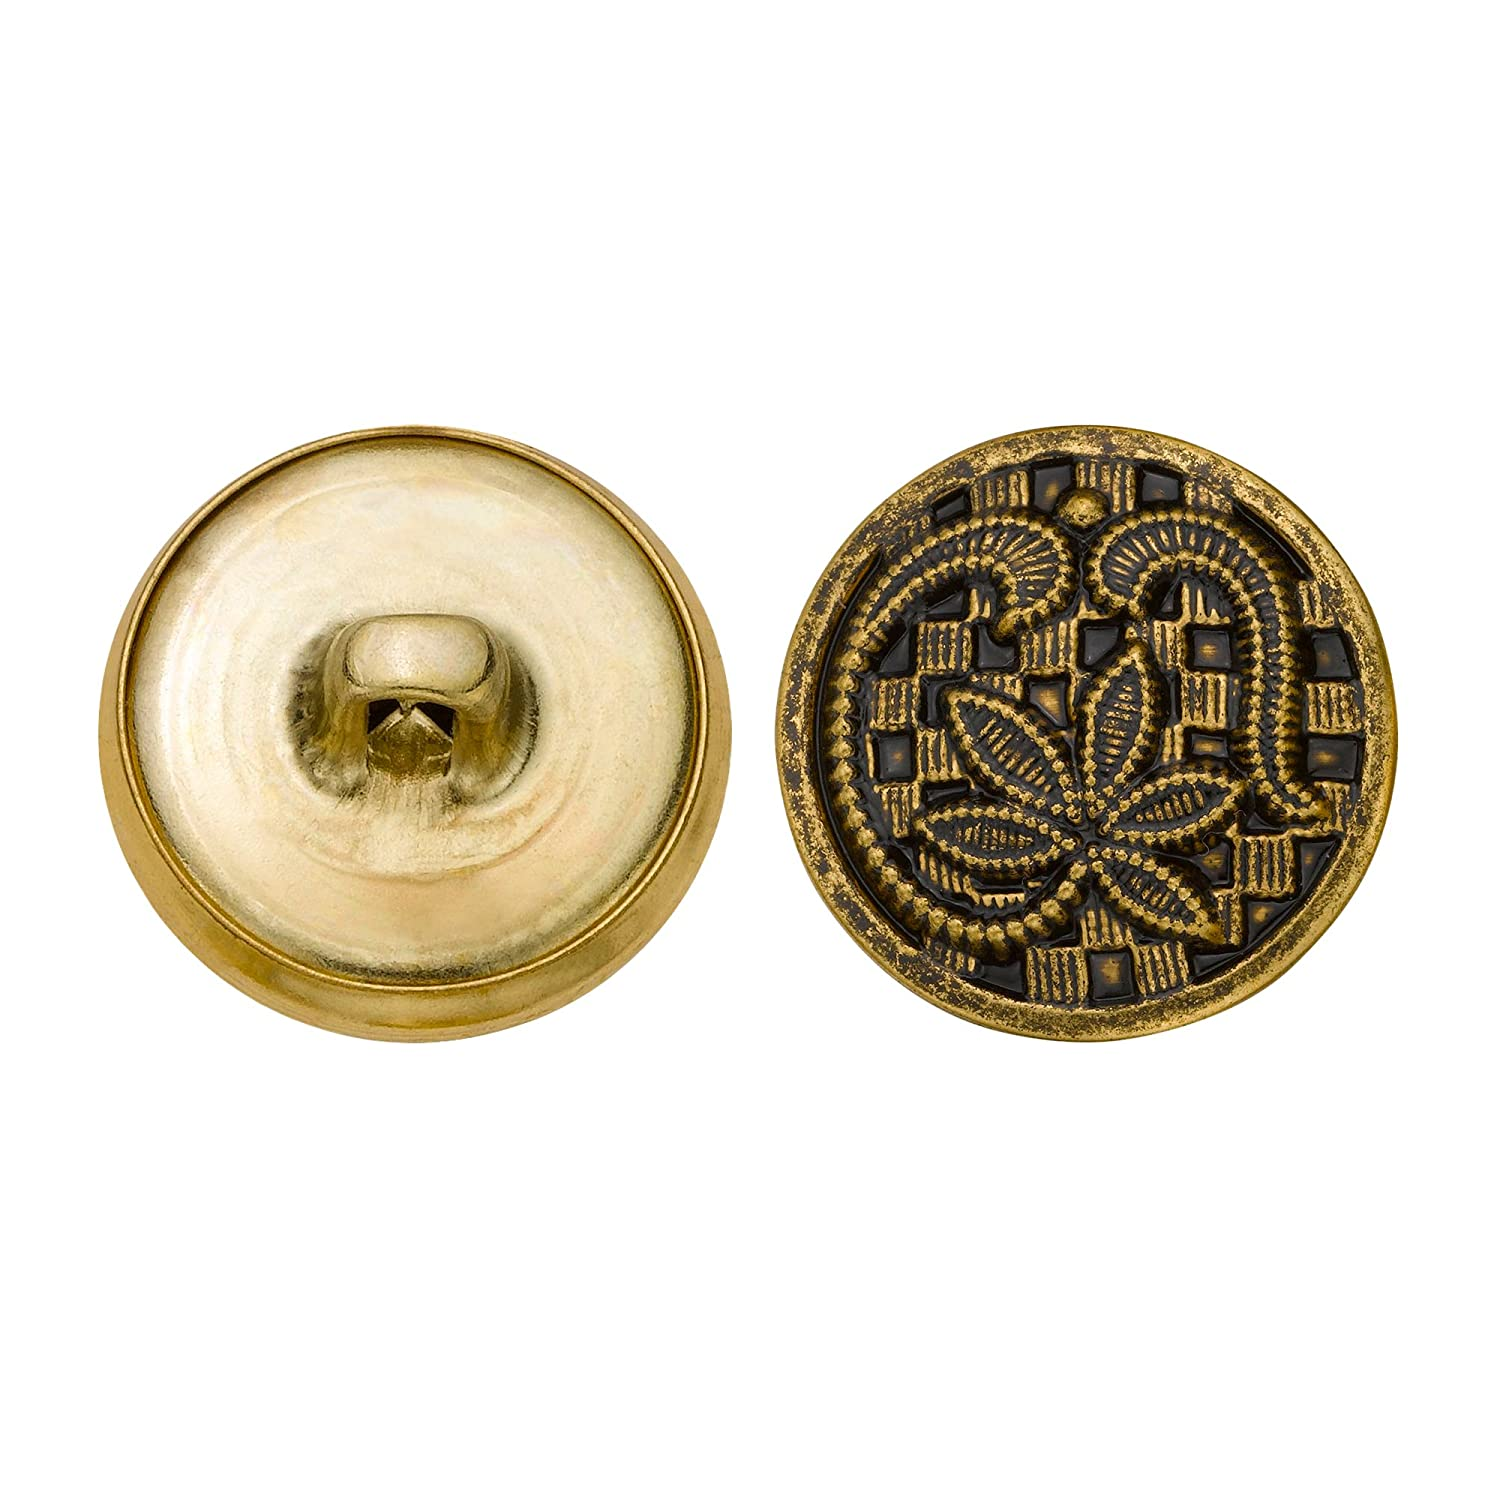 Antique Gold Size 30 Ligne 36-Pack C/&C Metal Products Corp C/&C Metal Products 5140 Leaf Over Checkers Metal Button